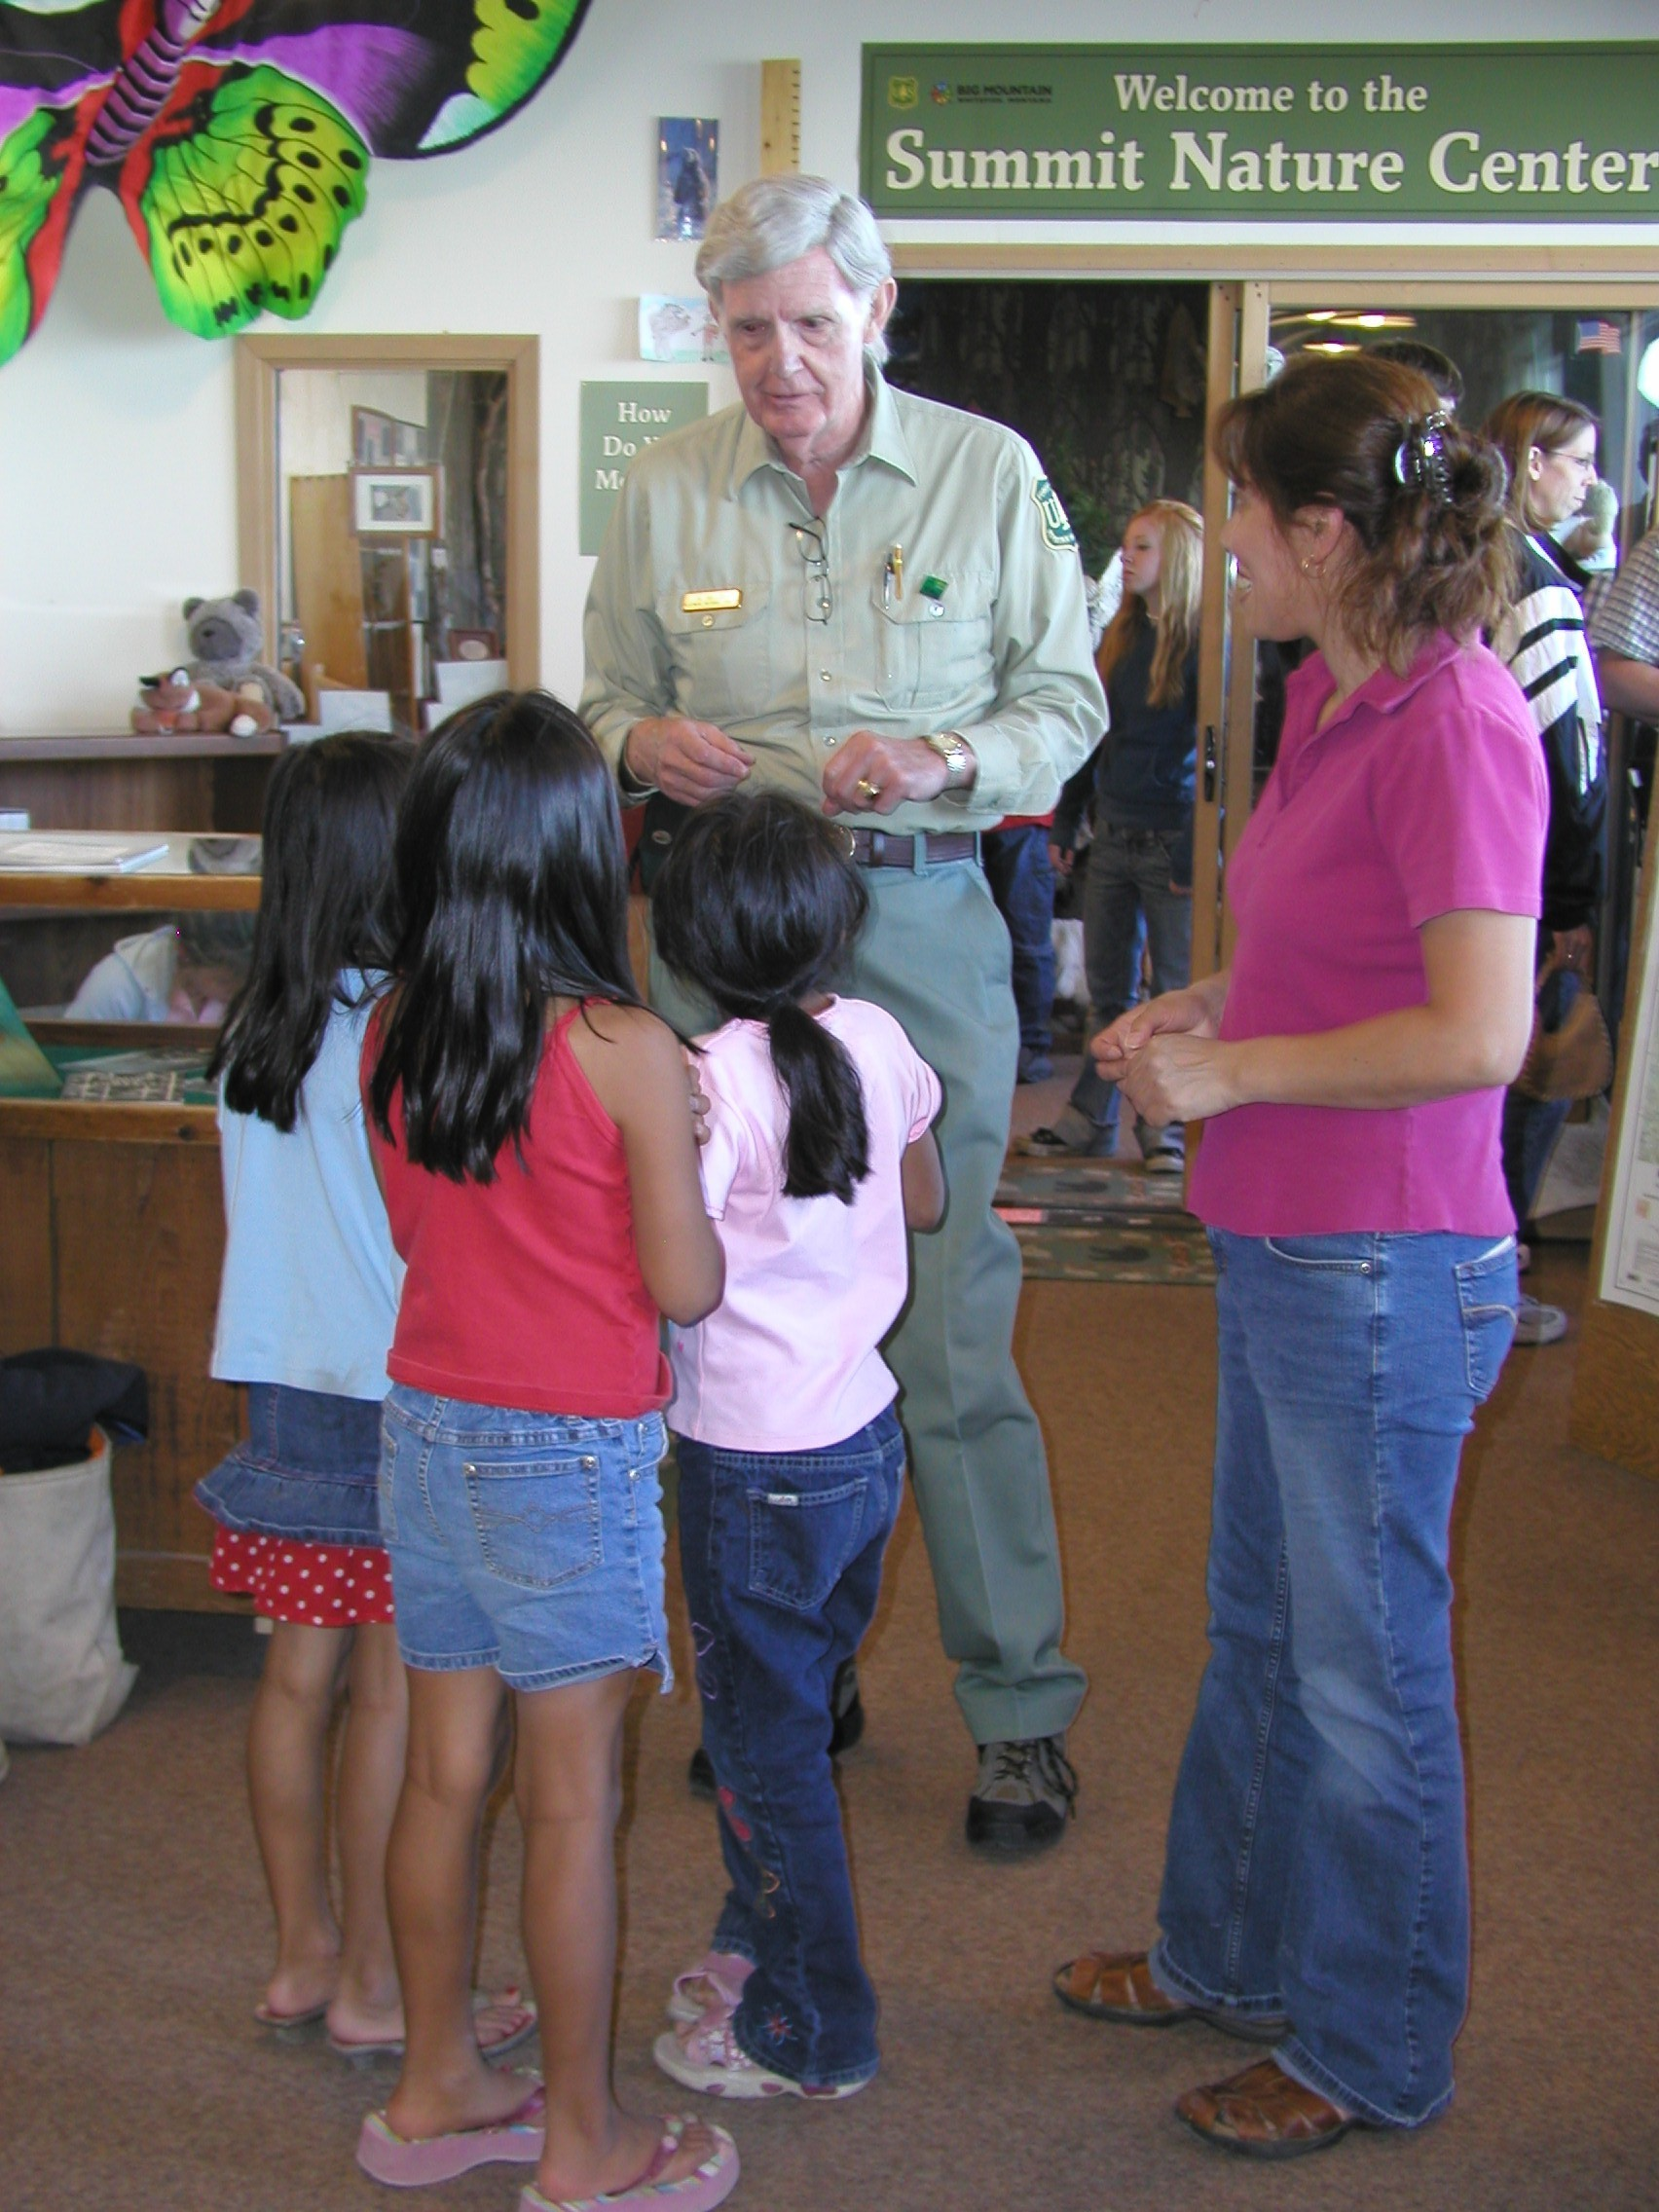 Ranger greets family inside the nature center